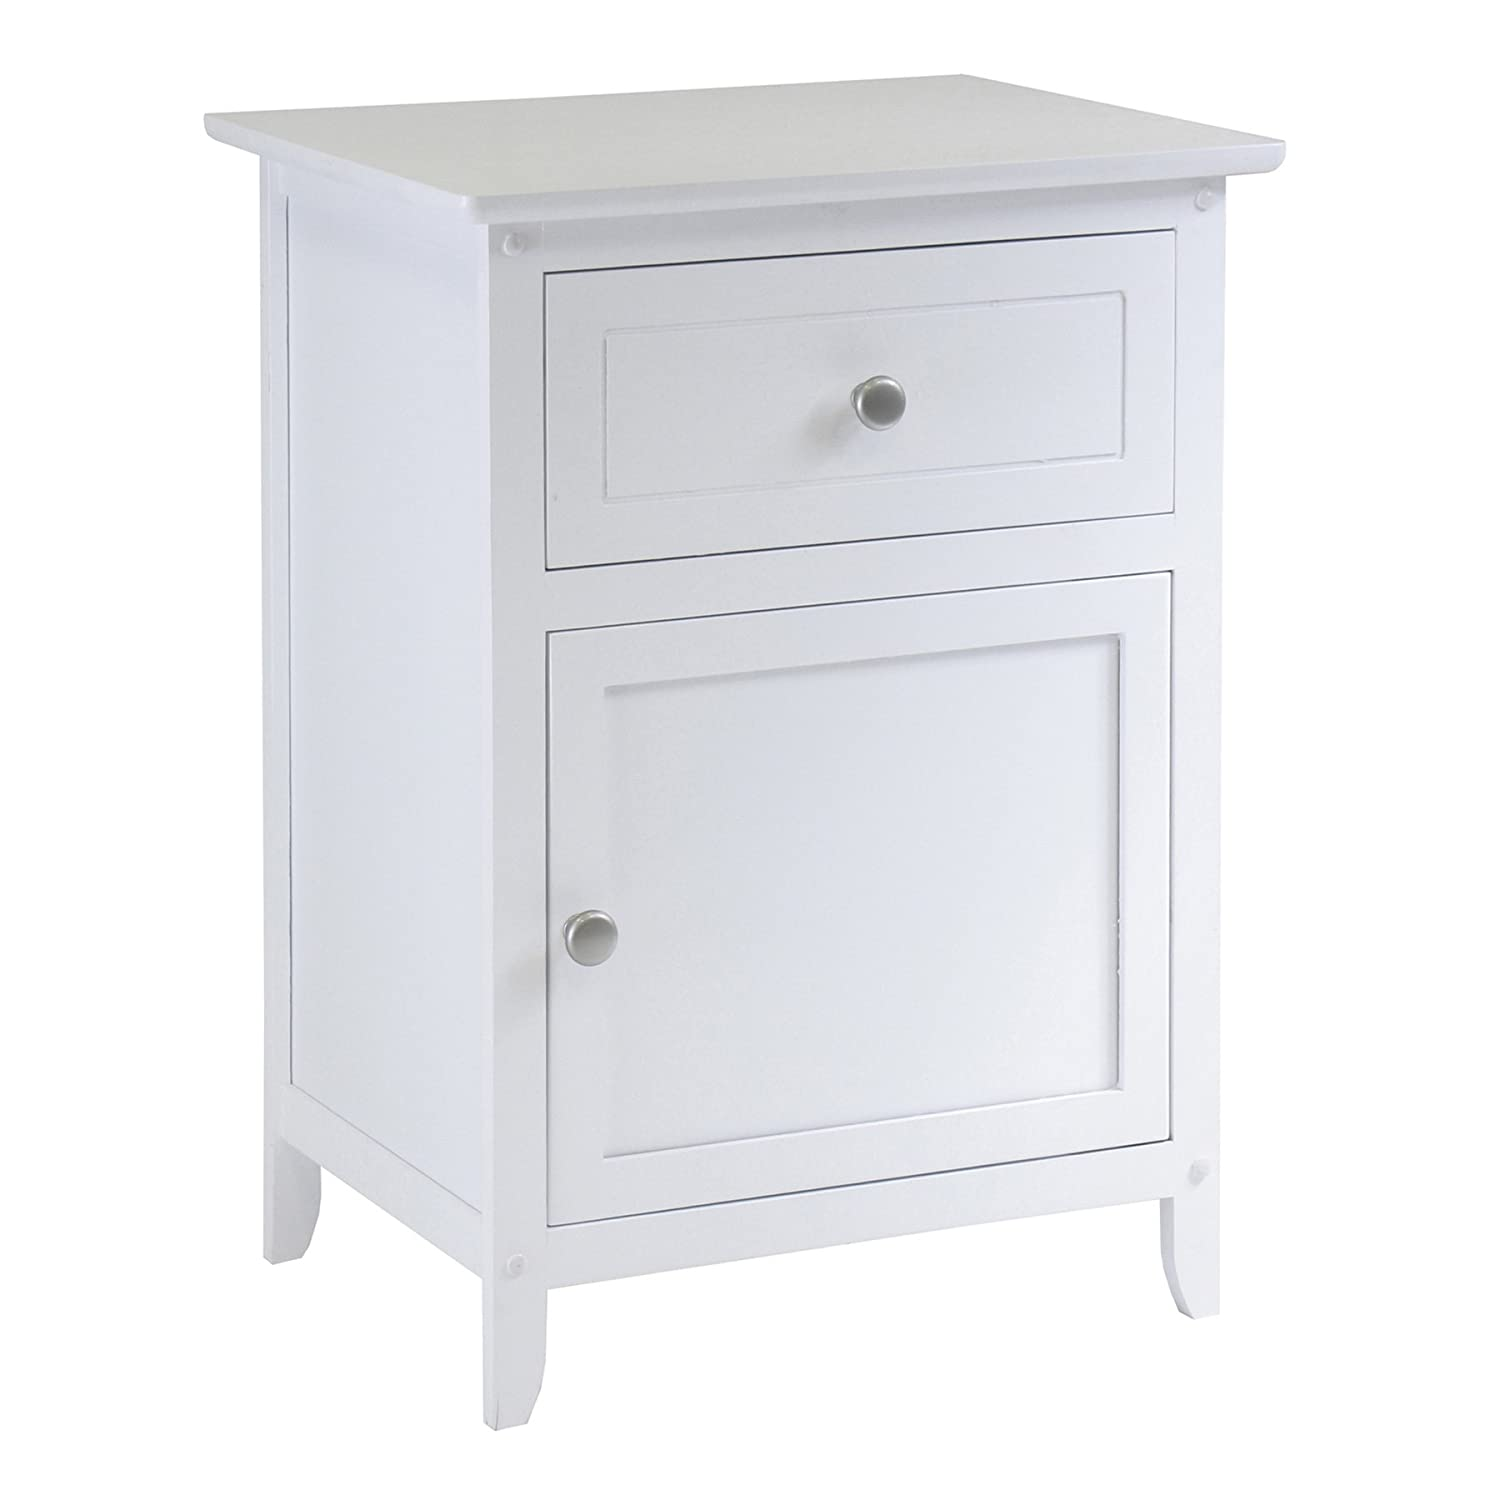 Amazon Winsome Wood Night Stand Accent Table With Drawer And Cabinet For Storage White Kitchen Dining